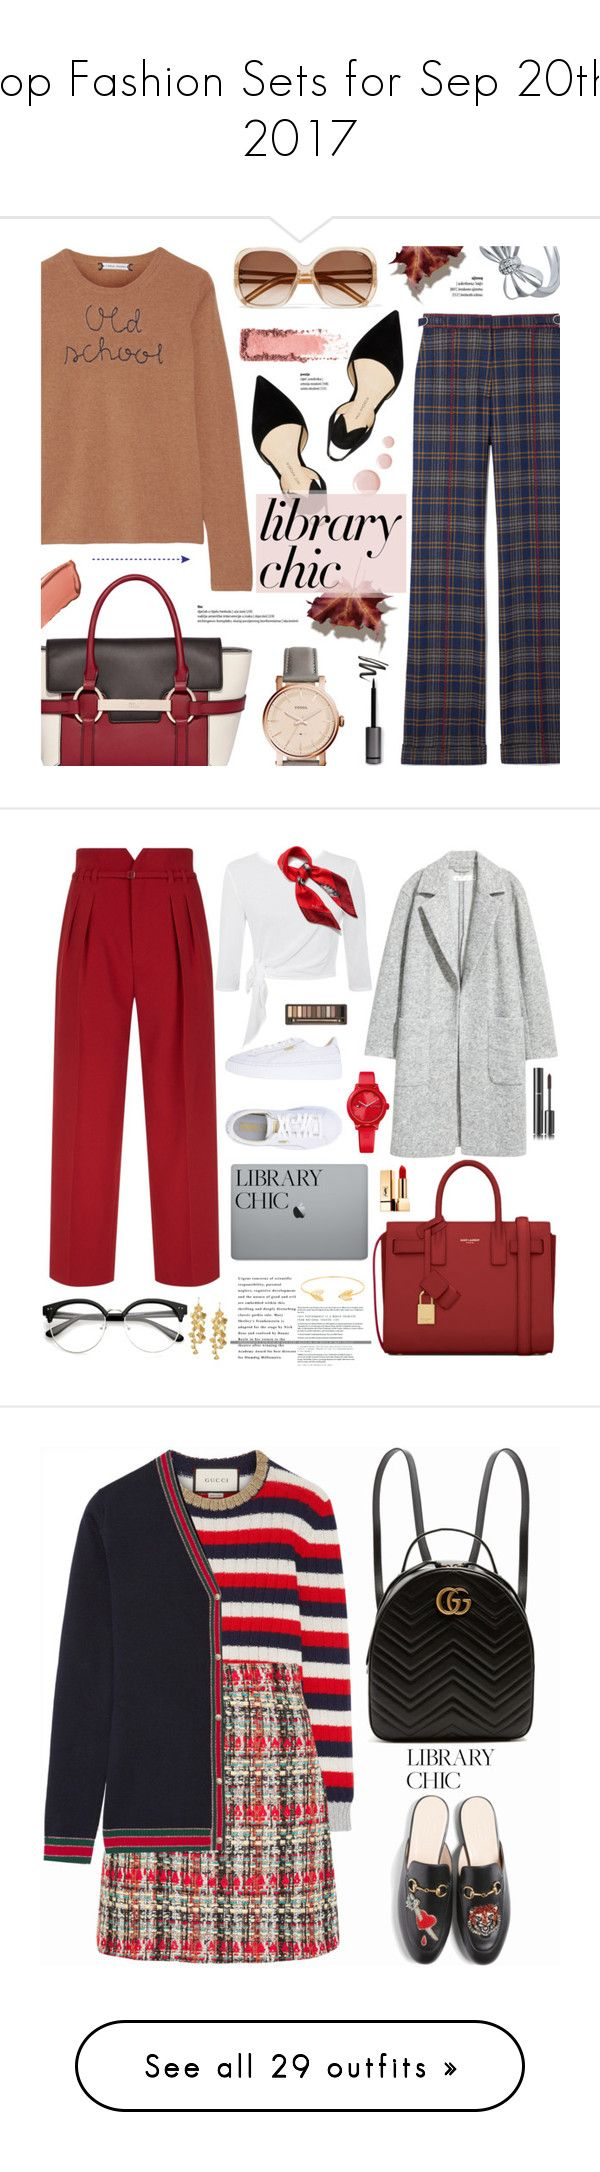 """""""Top Fashion Sets for Sep 20th, 2017"""" by polyvore ❤ liked on Polyvore featuring Lingua Franca, Gabriela Hearst, Chloé, Paul Andrew, FOSSIL, Topshop, BERRICLE, Hourglass Cosmetics, Fiorelli and RED Valentino"""